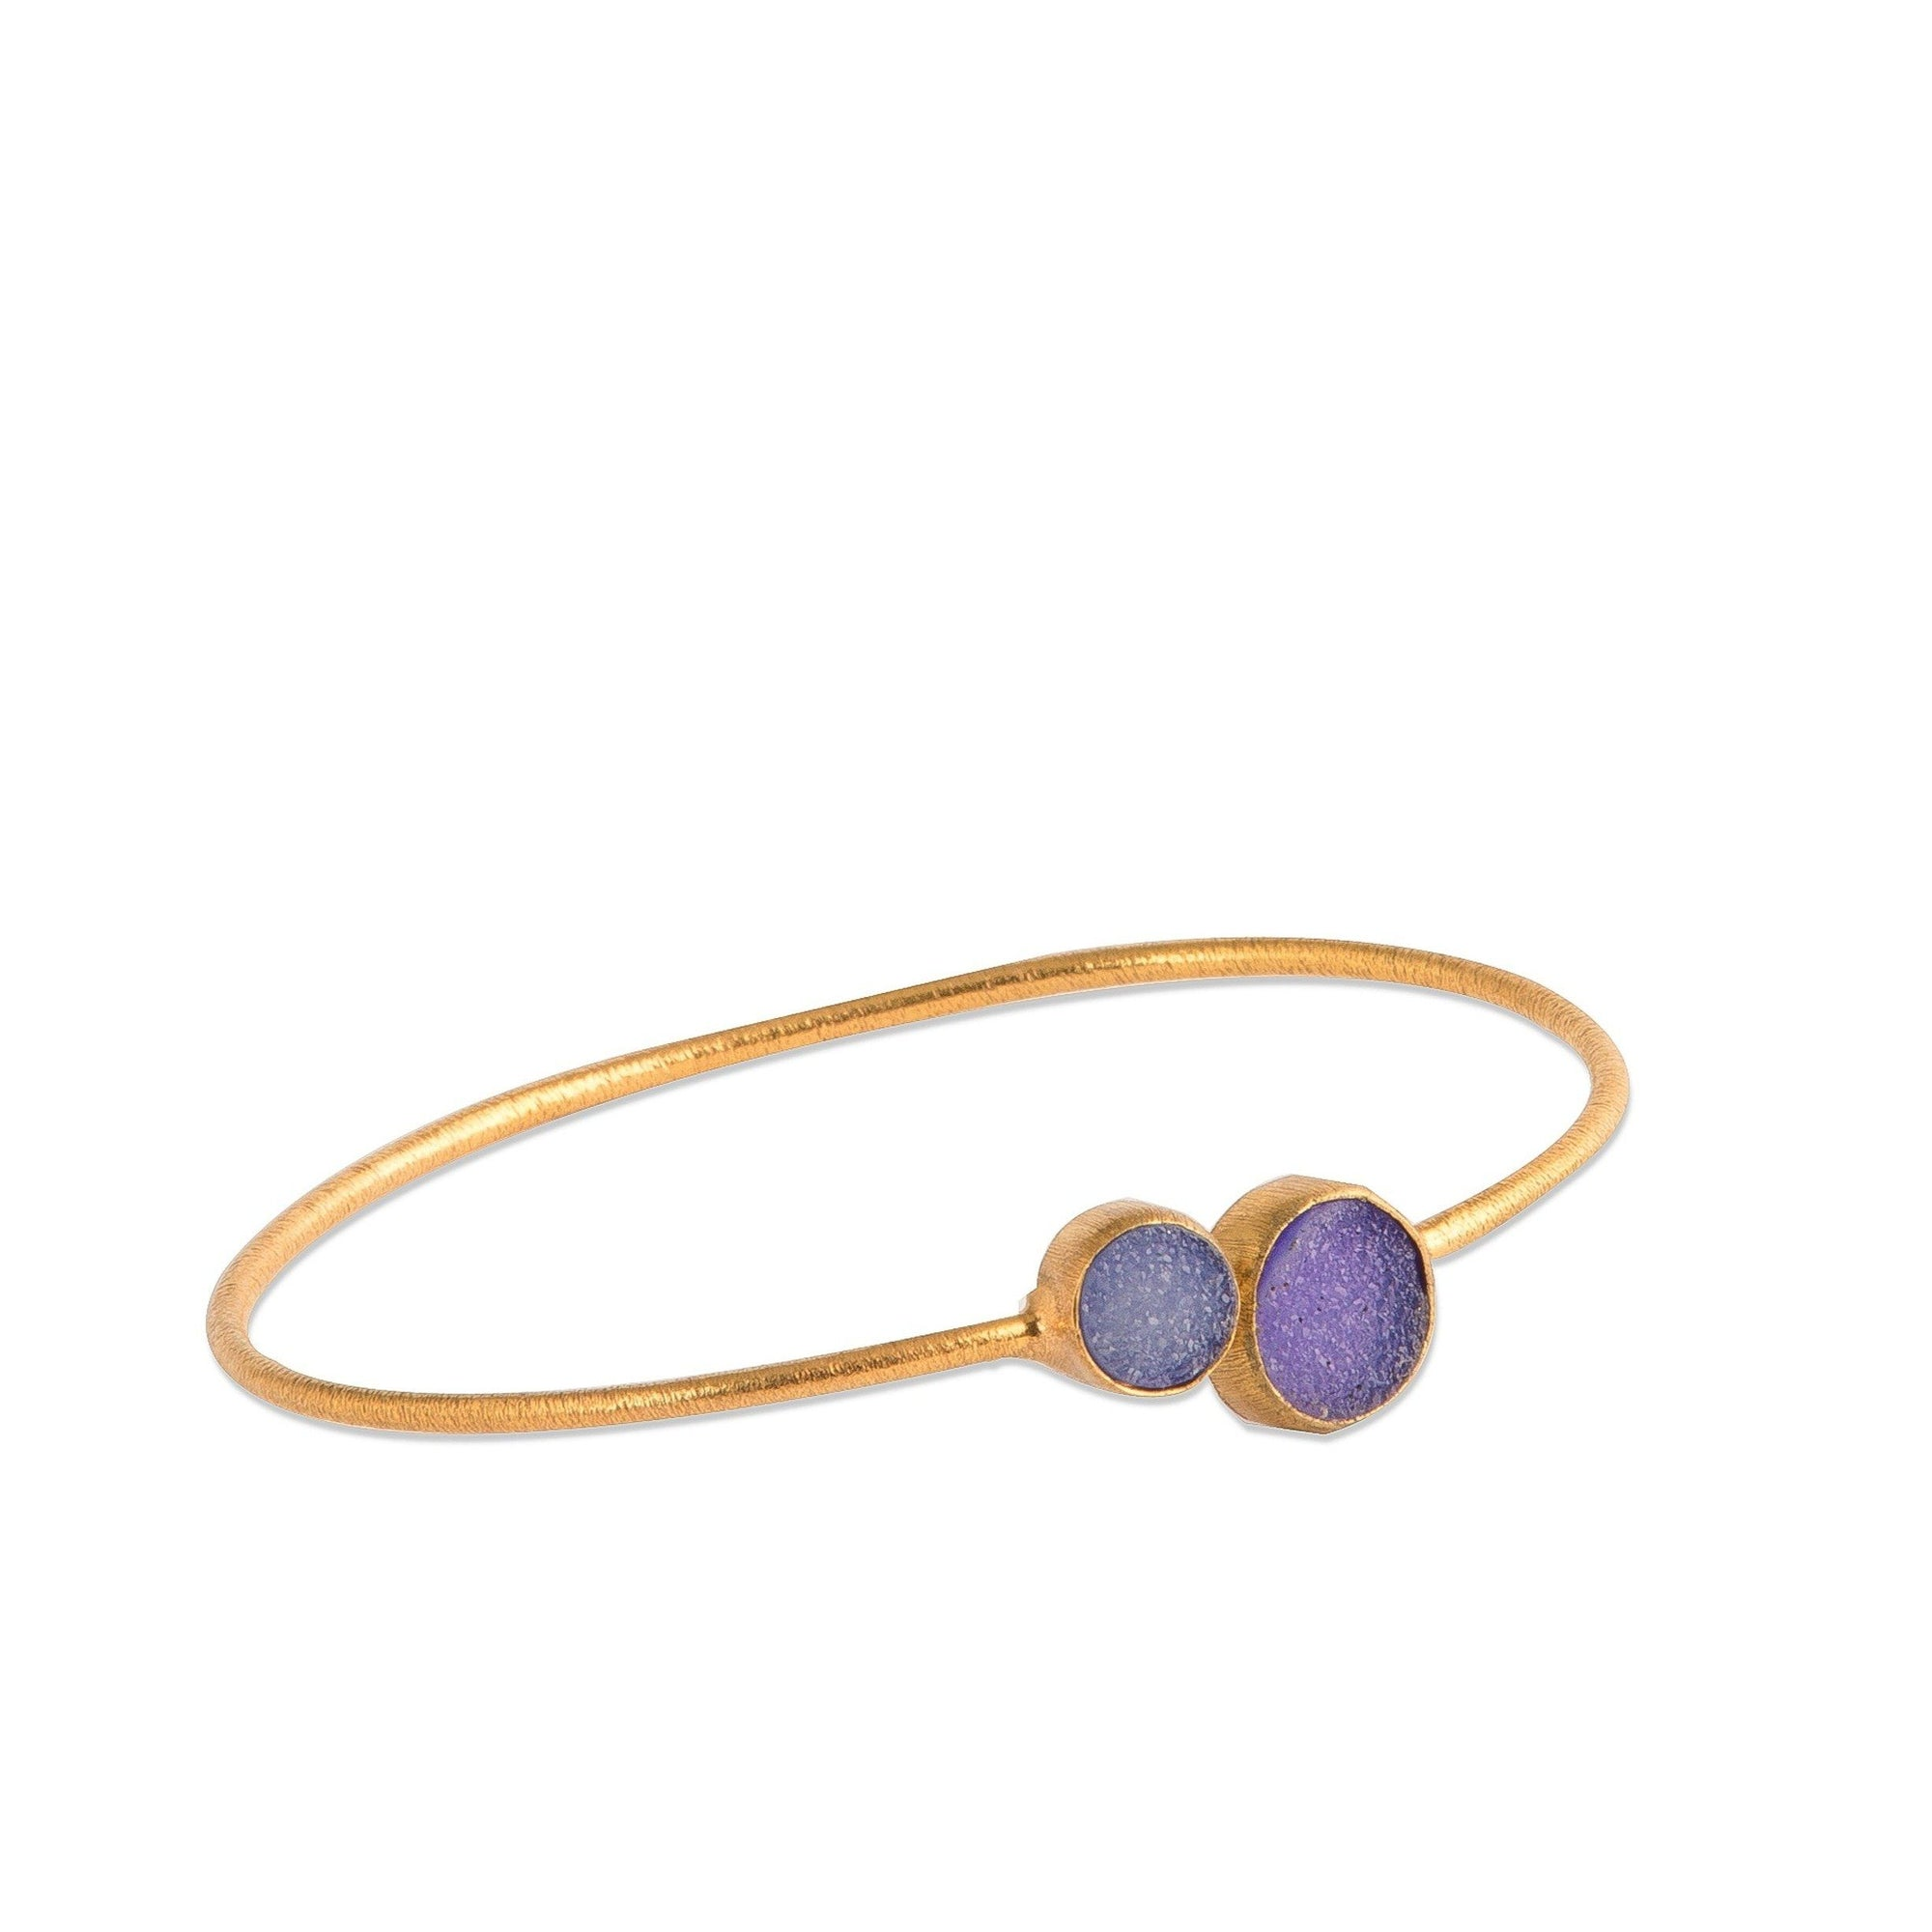 Demi - Gold - Purple Druzy - Bangle